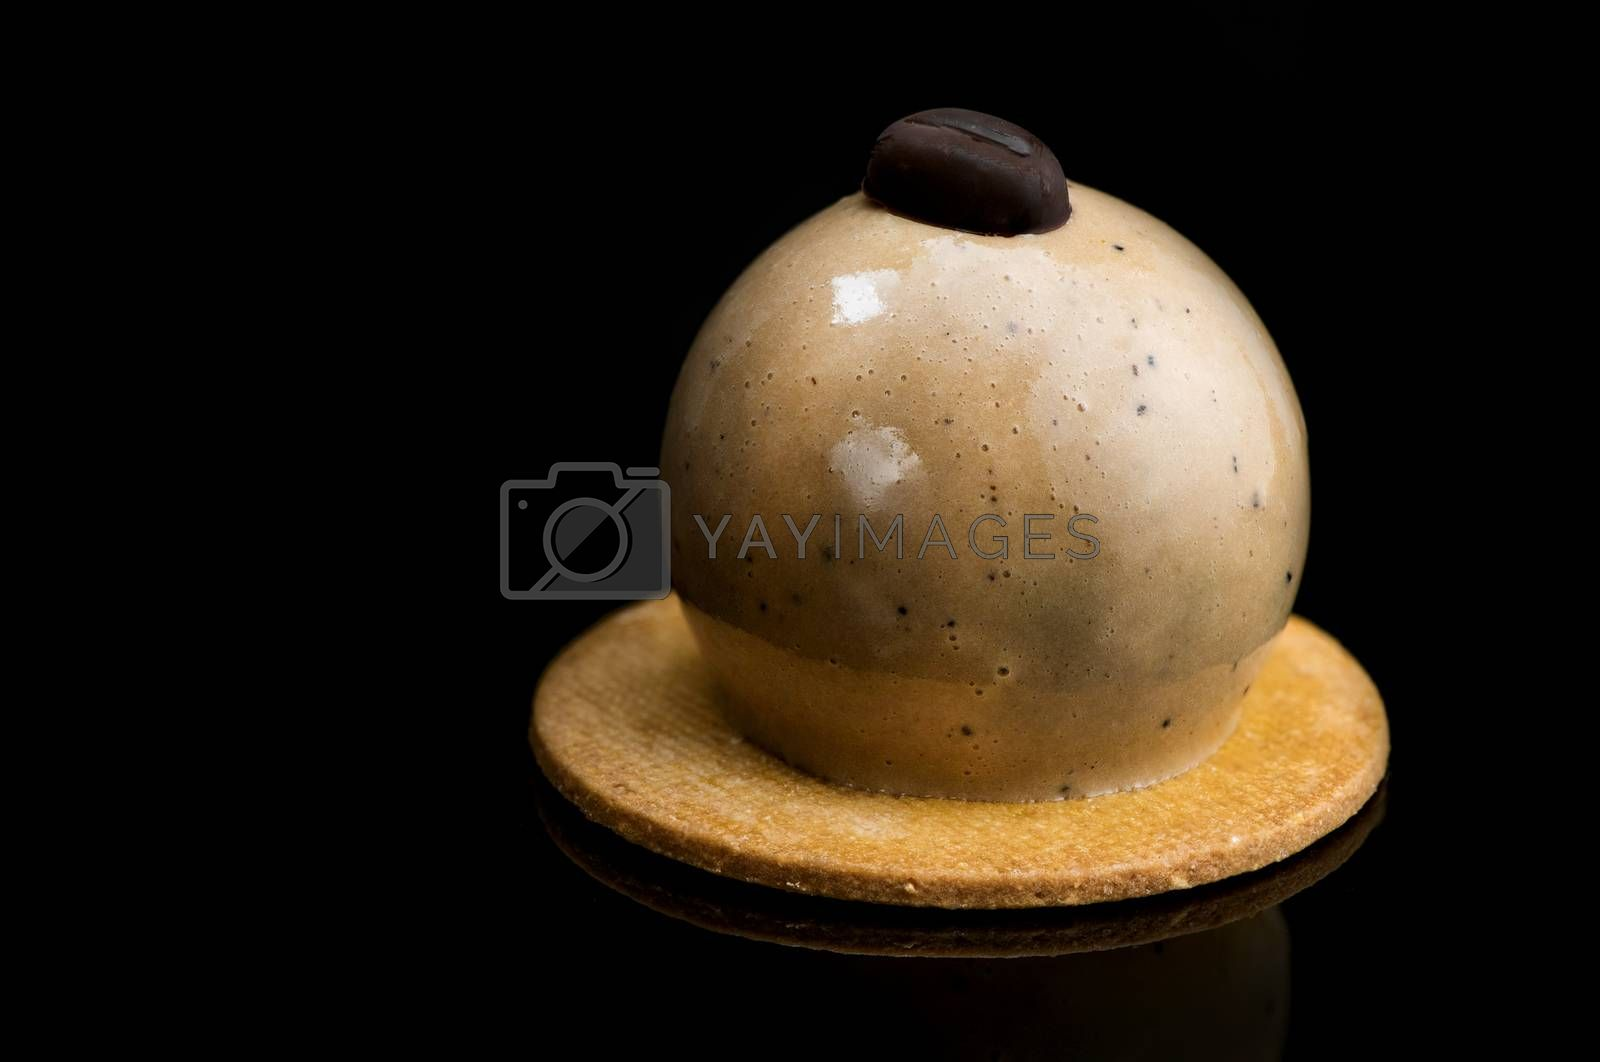 Artisan Monoportion Cake. Handmade Chocolate Dessert. Creative P by merc67